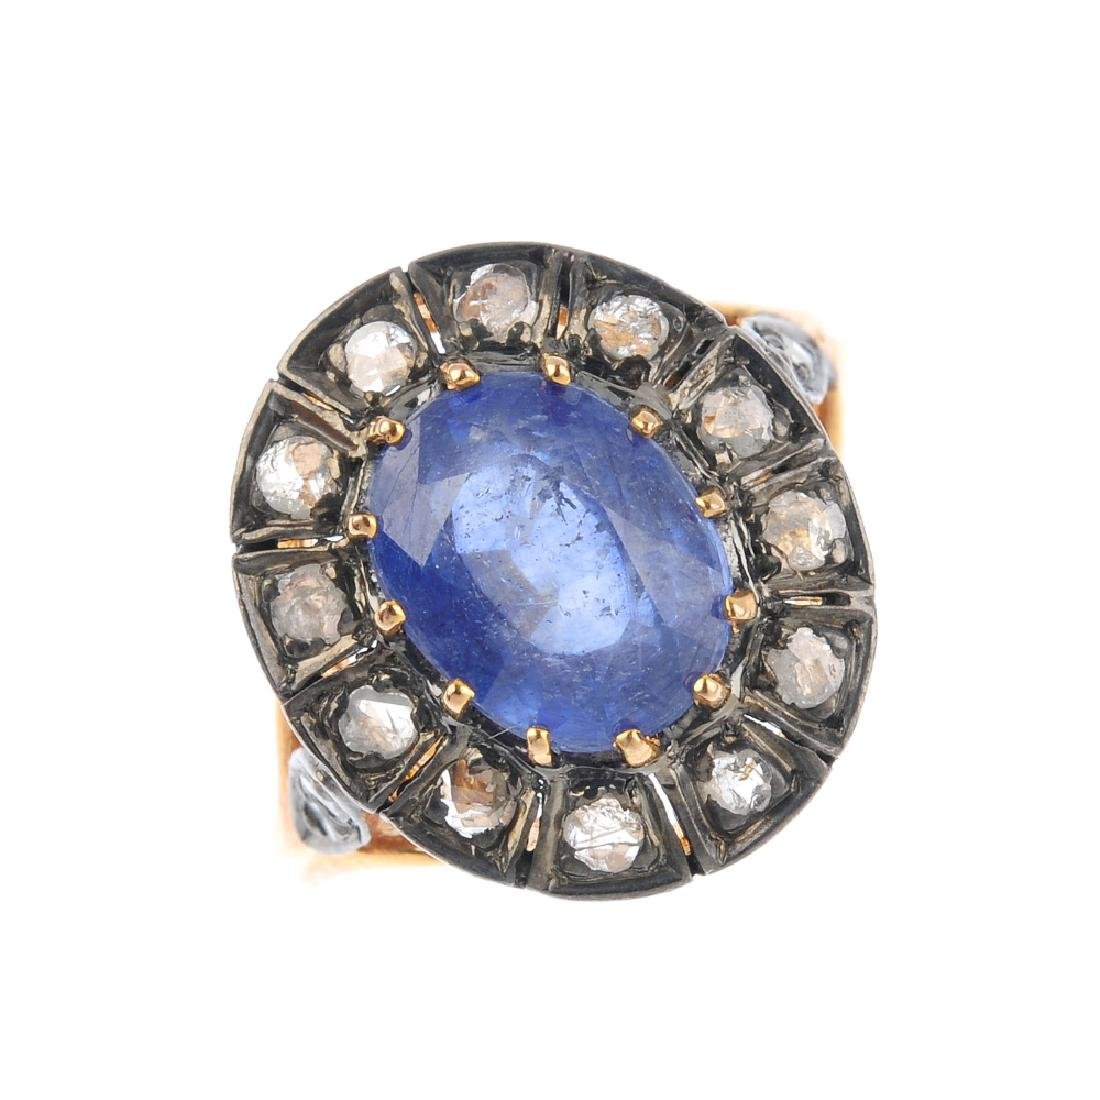 A diamond and glass-filled blue-gem cluster ring. The